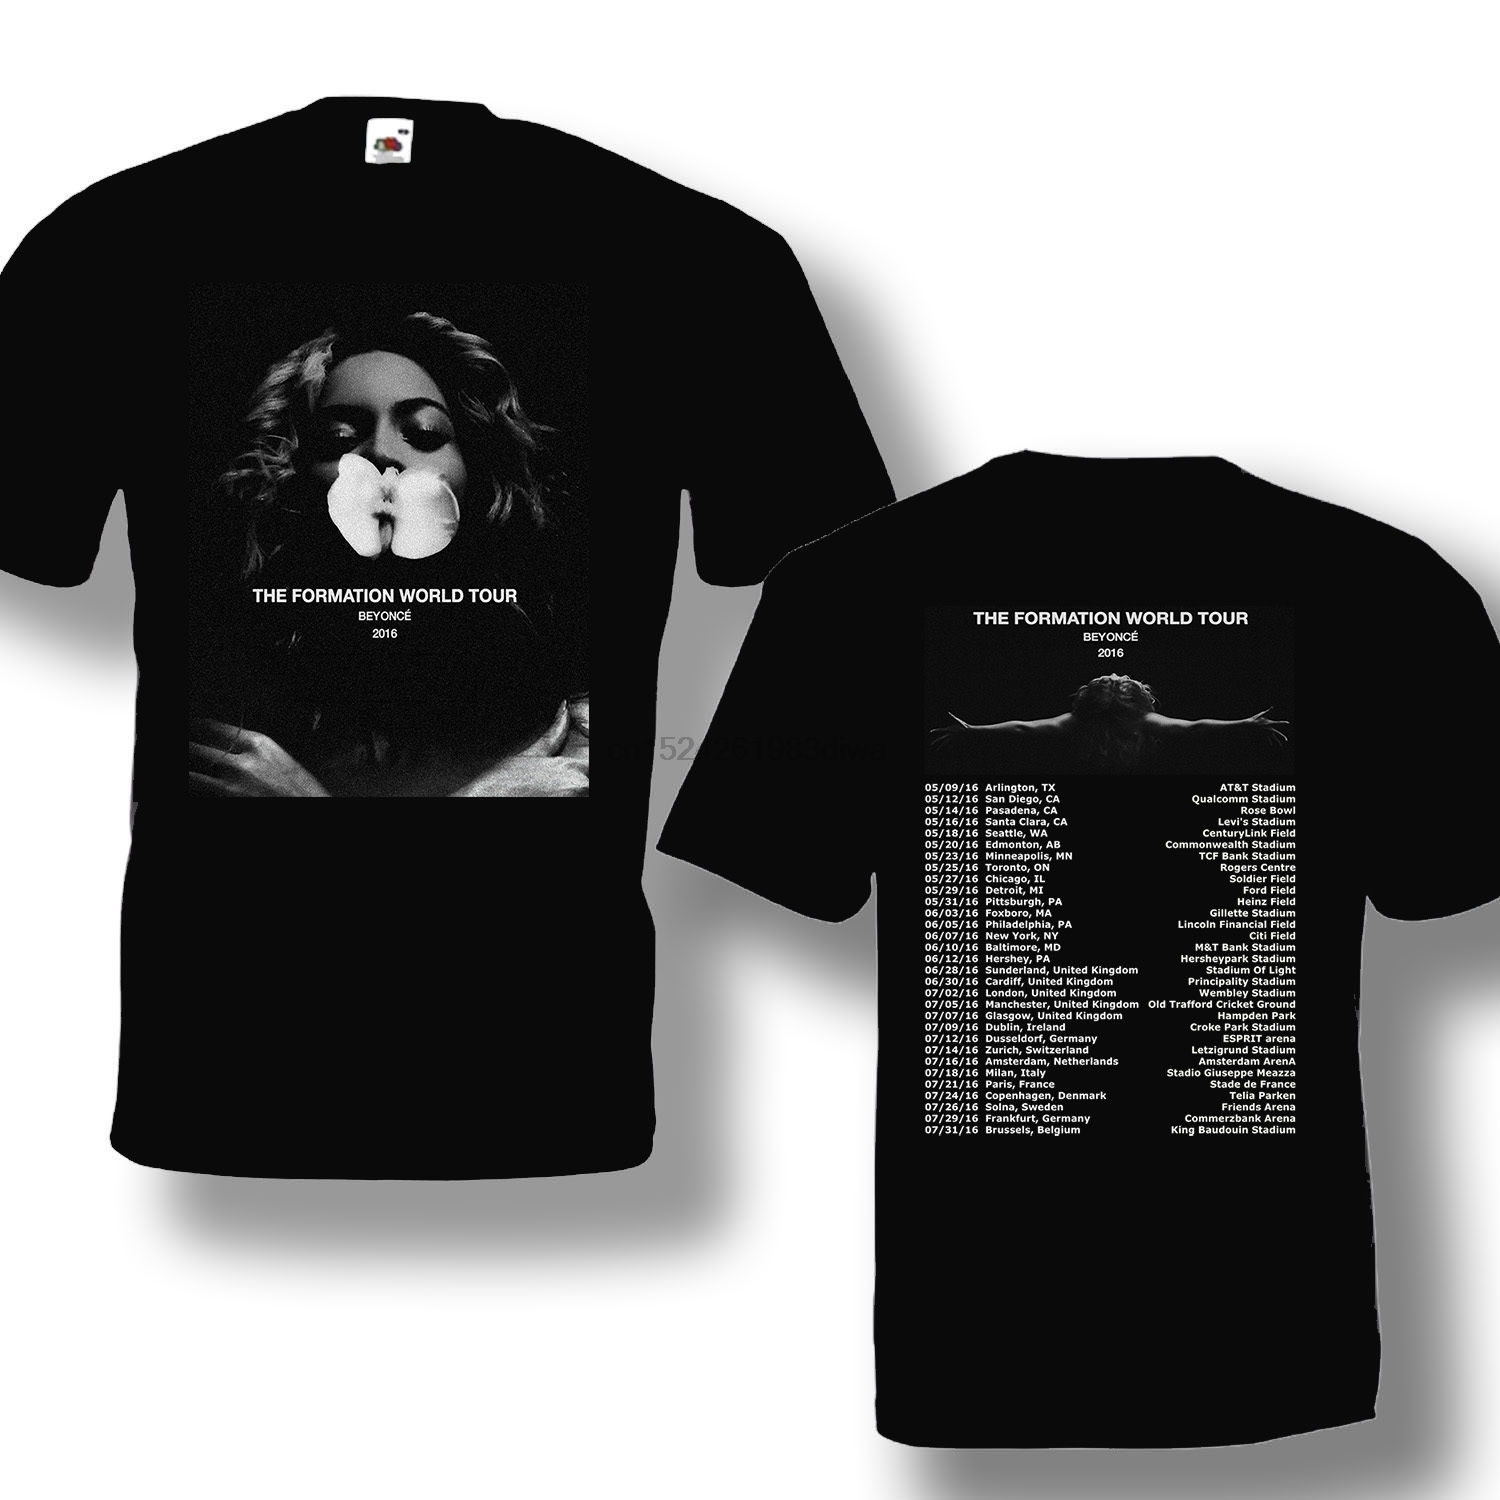 Us 12 99 Aliexpress Com Buy The Formation Tour 2016 Beyonc Black T Shirt Short Sleeve Cotton From Reliable T Shirts Suppliers On Najiawang001